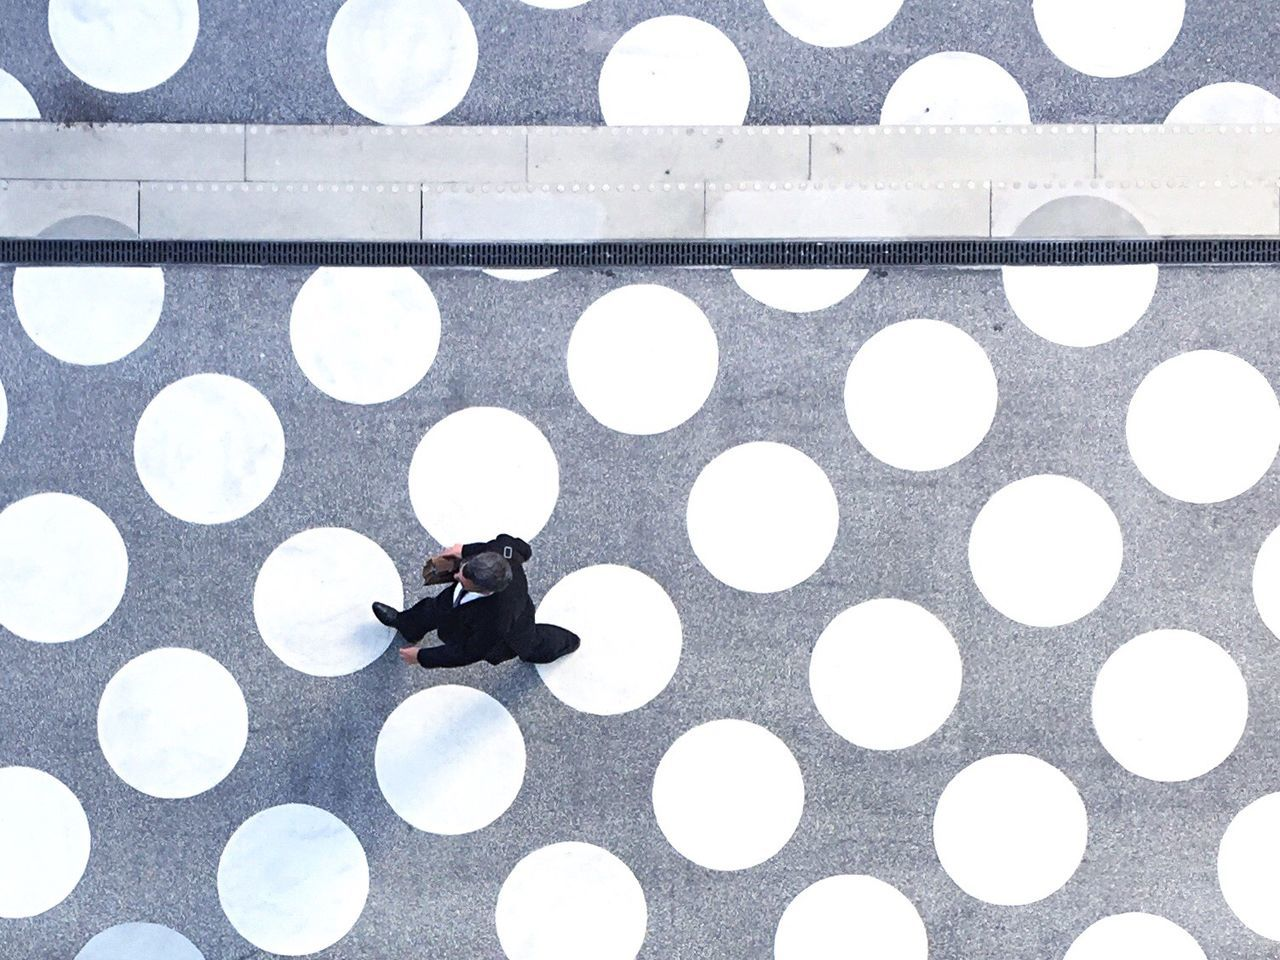 Directly Above Shot Of Businessman Walking On Patterned Footpath